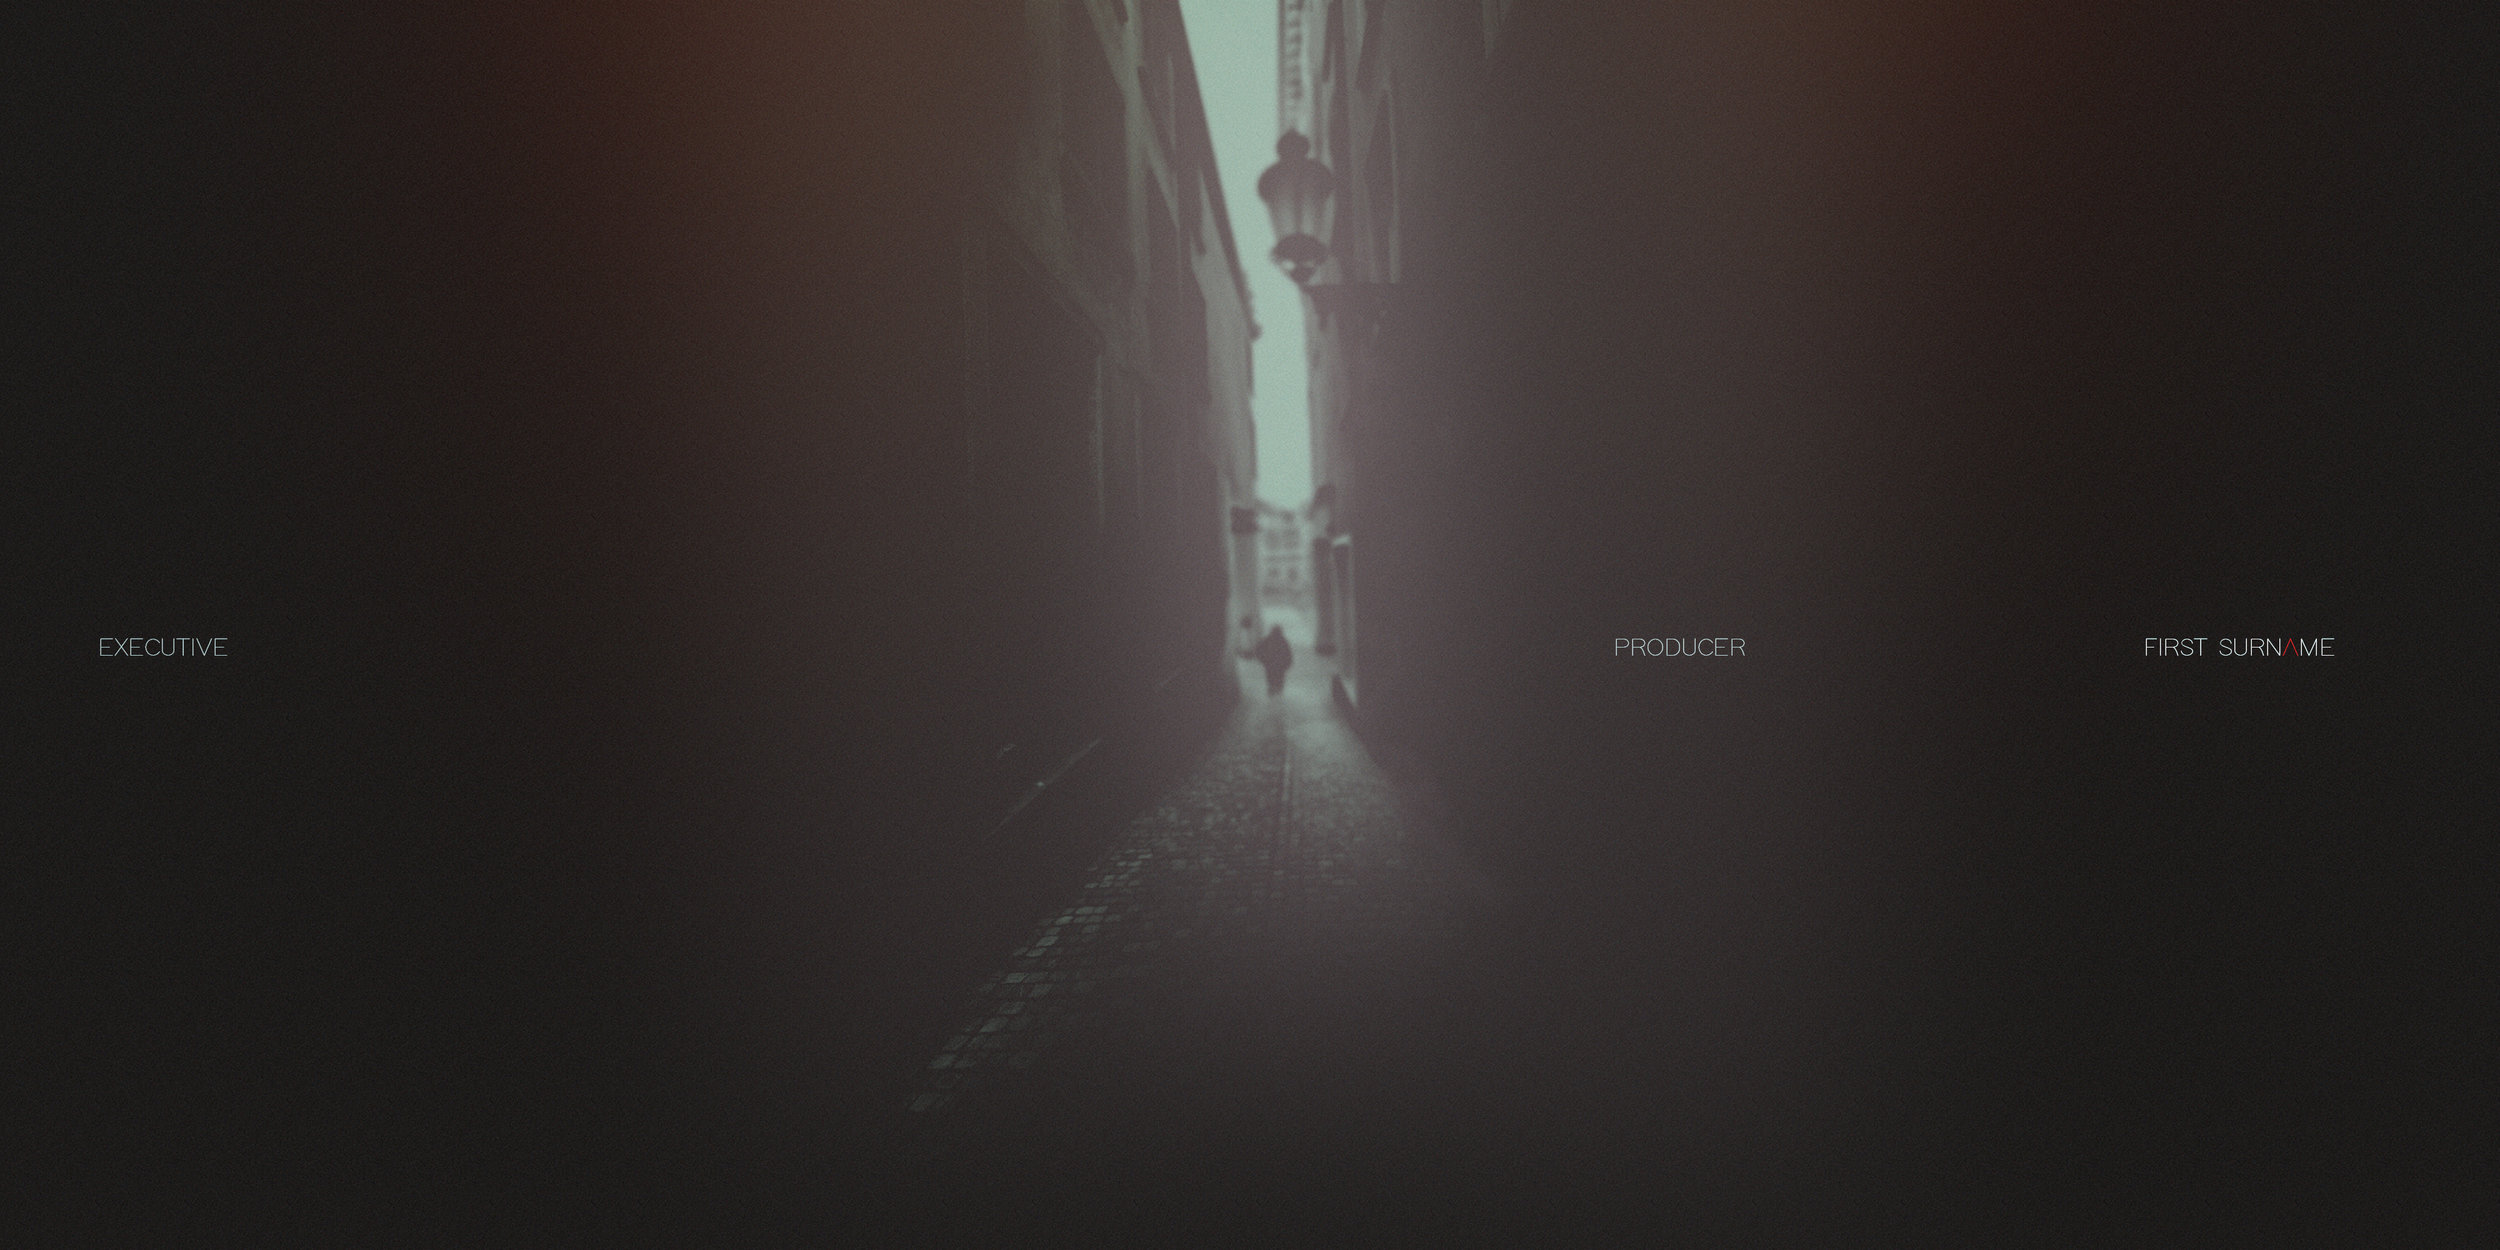 08_CHANCE_FOGGY ALLEY_JC-02.jpg